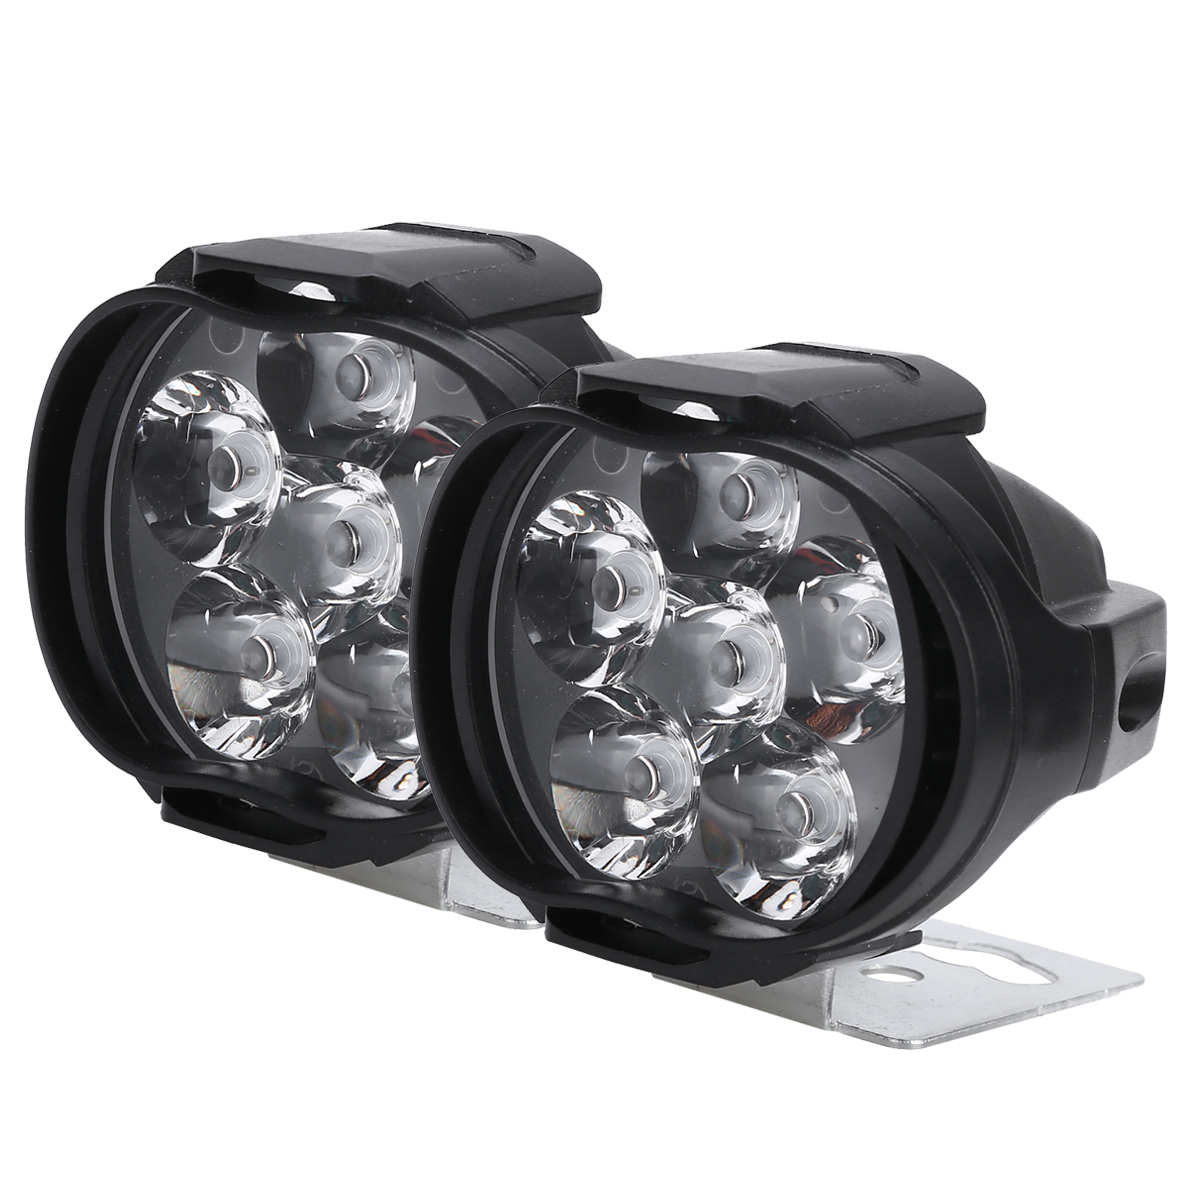 1pair Motorcycle Headlight Scooter Fog Spotlight LED Motorbike ATV 9-85V Moto Working Spot Light Day-time Running Lamp White